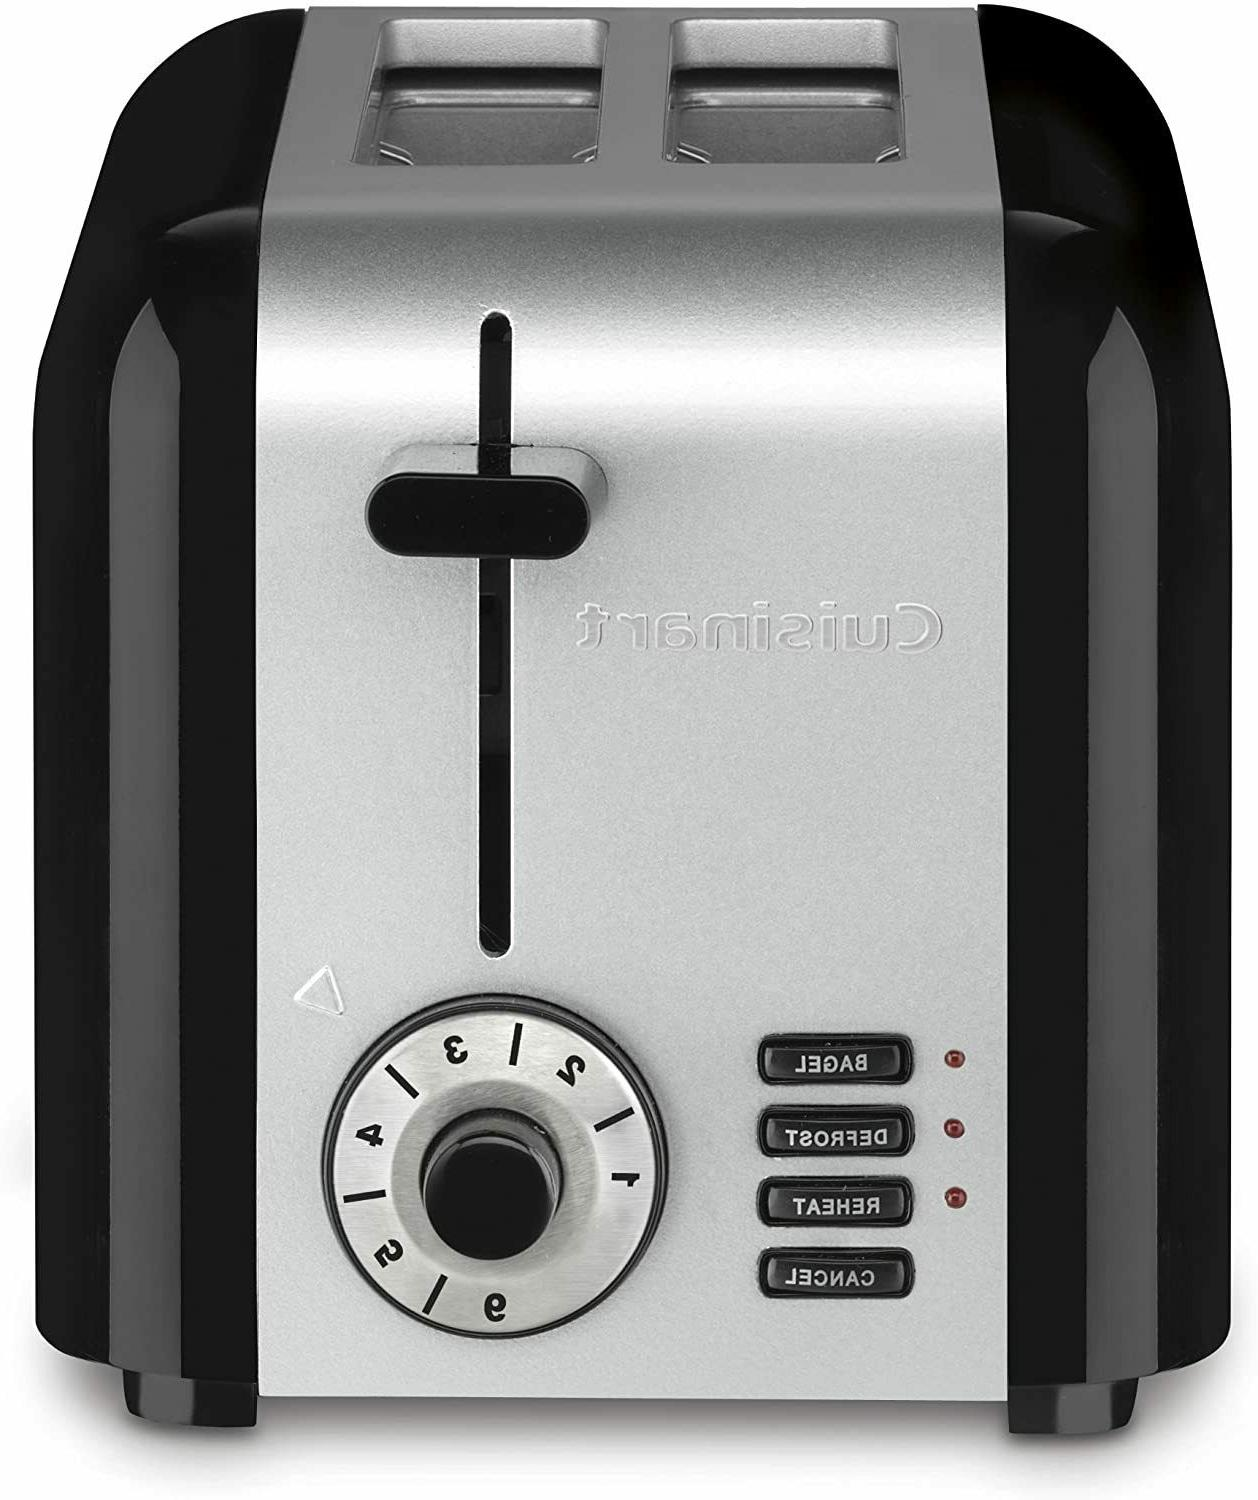 cpt 320p1 compact stainless 2 slice toaster